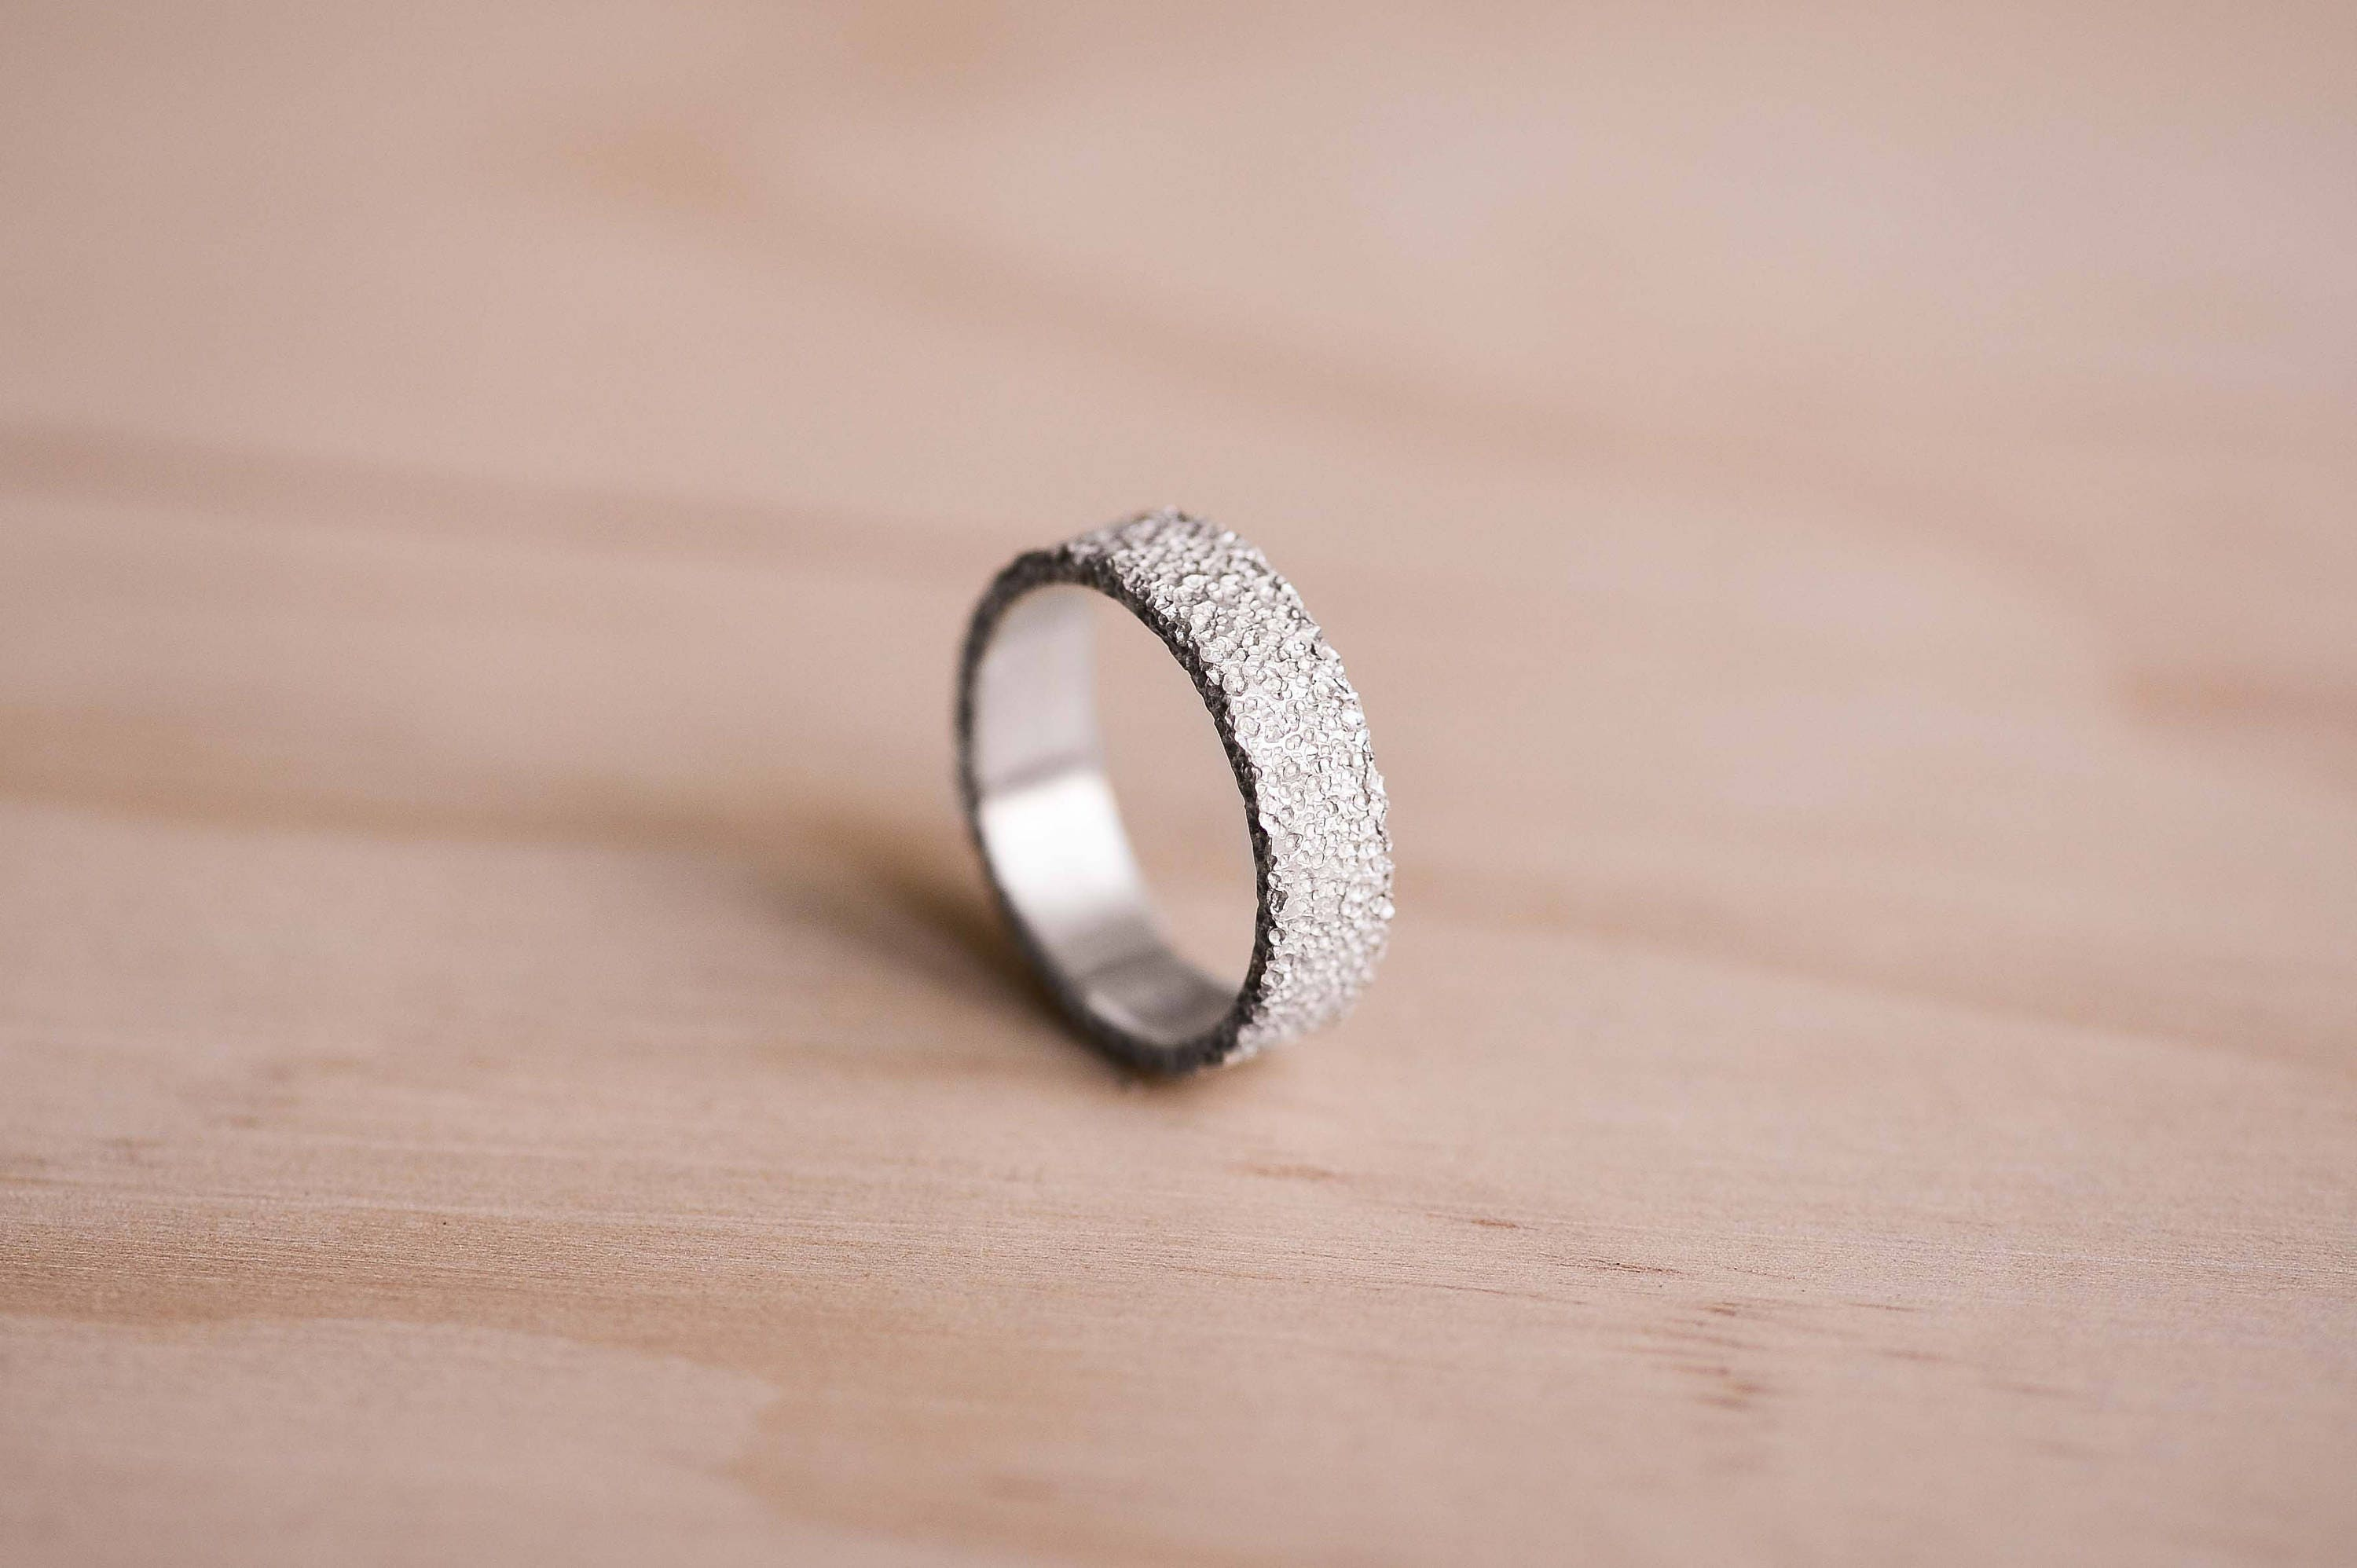 Volcanic Rock Texture Argentium Silver Ring 100% Recycled